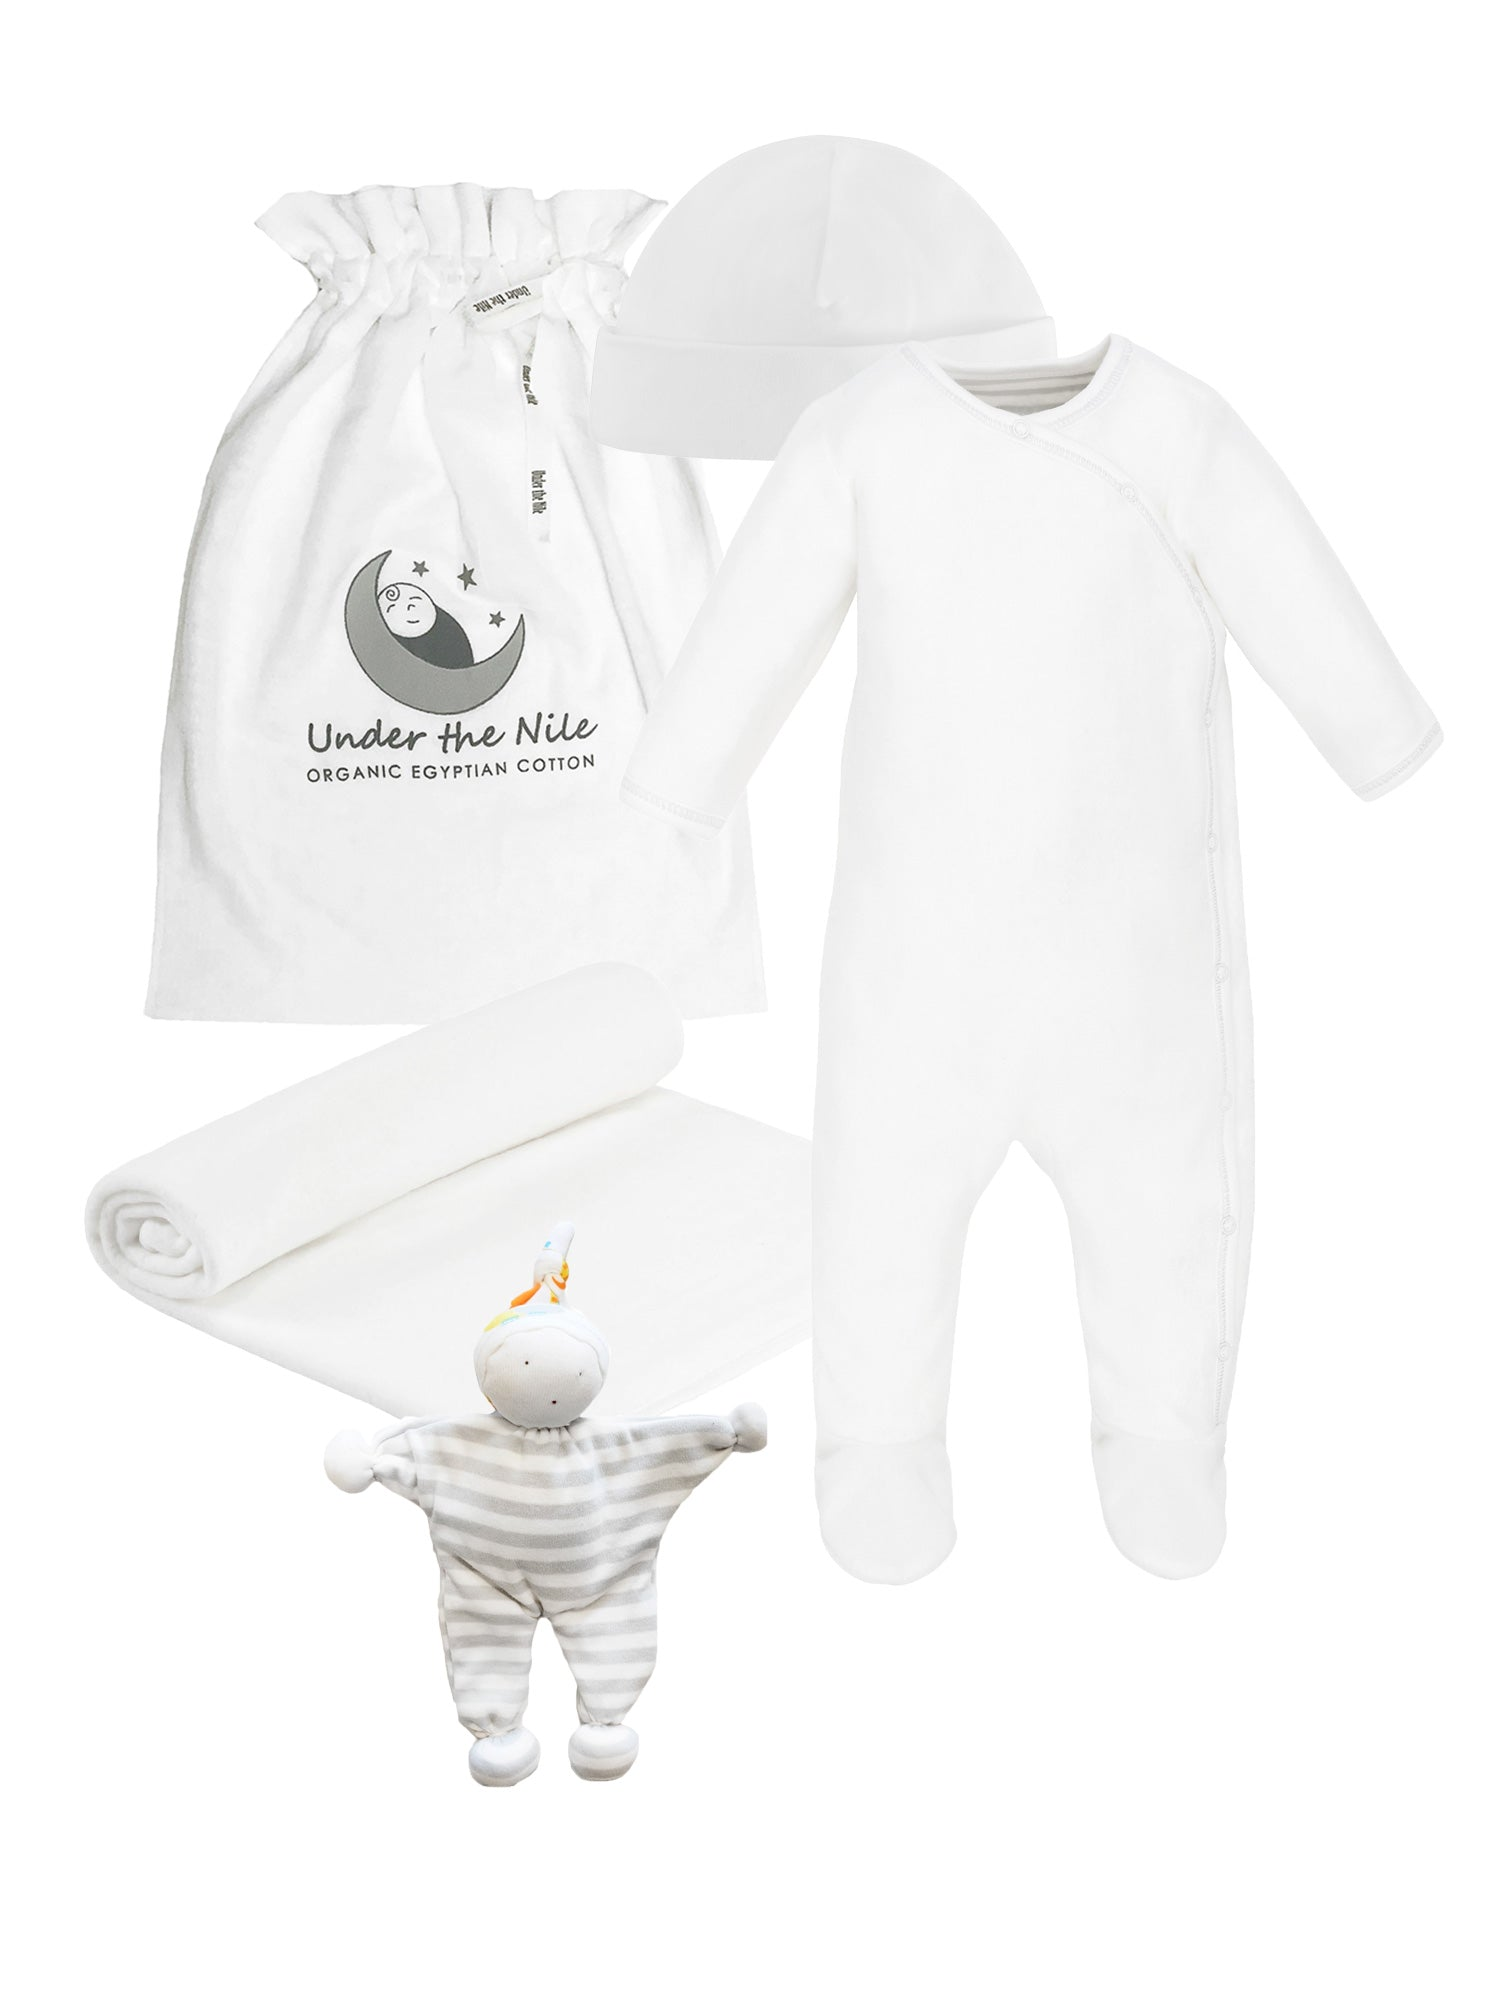 Winter White Sherpa Gift Set